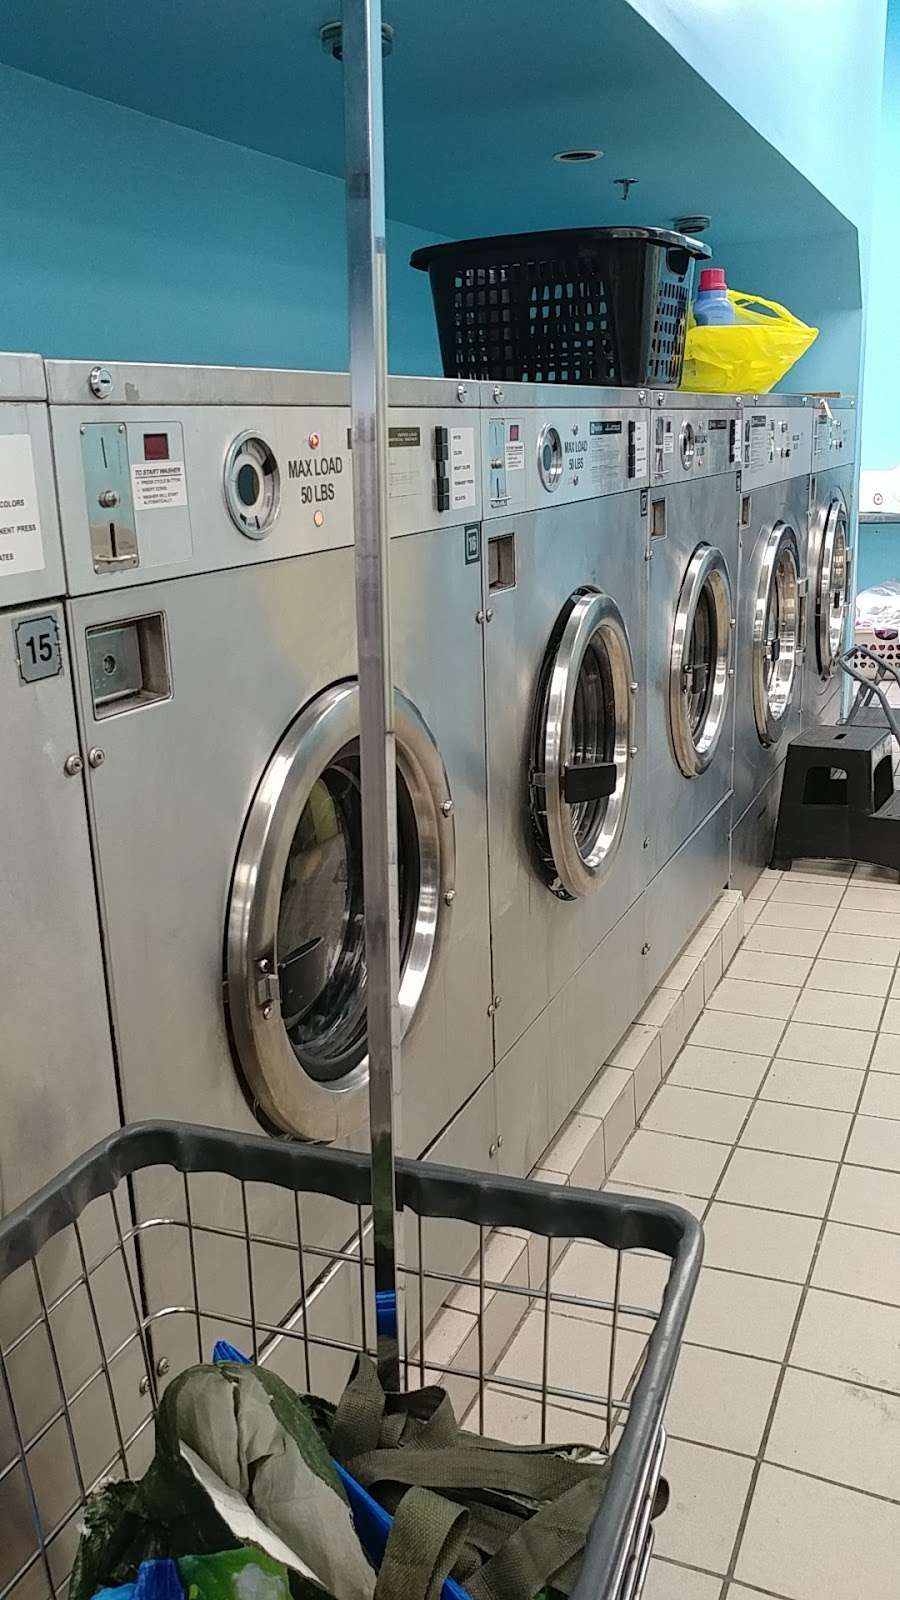 Snow Wash And Cleaners - laundry  | Photo 1 of 5 | Address: 500 S River St, Hackensack, NJ 07601, USA | Phone: (201) 641-3335